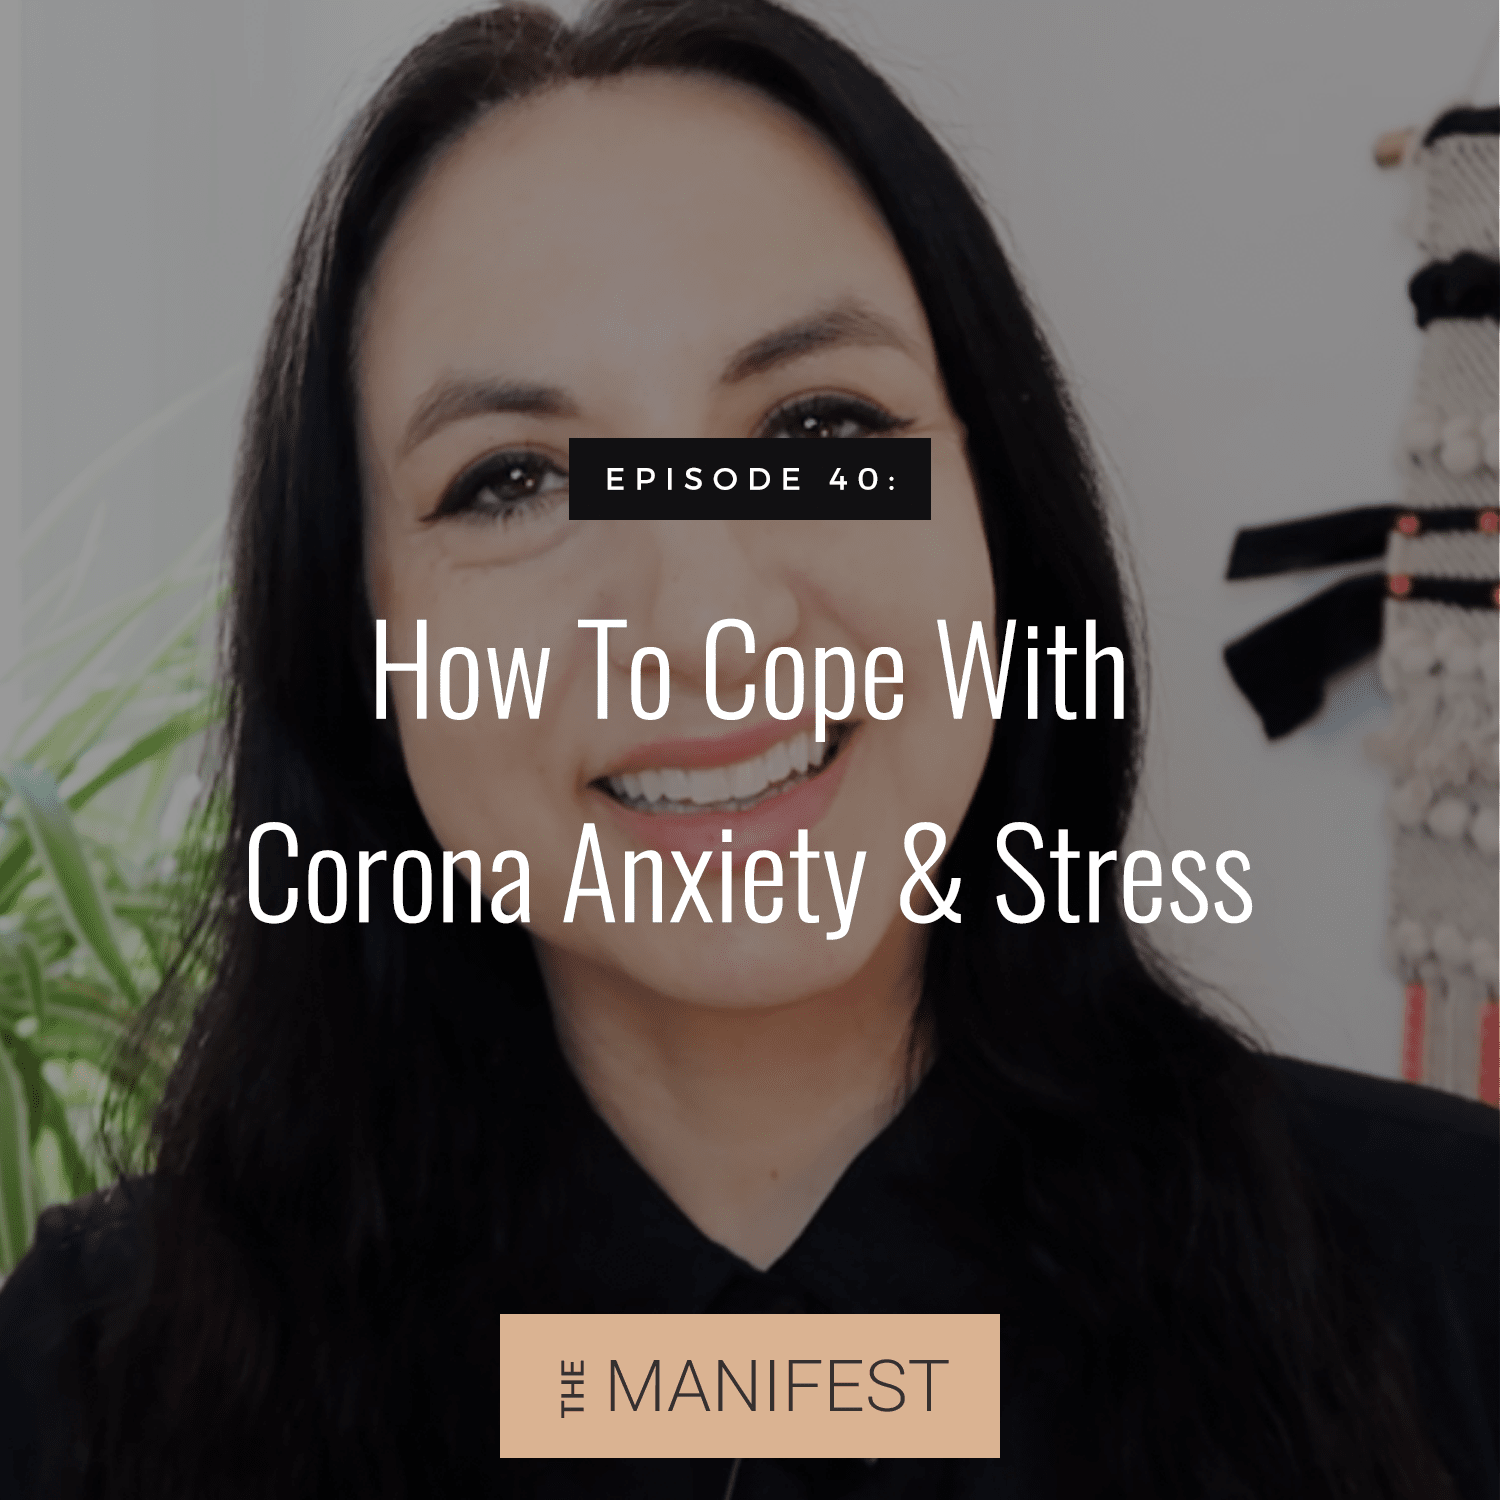 Episode 40: How To Cope With Corona Anxiety & Stress